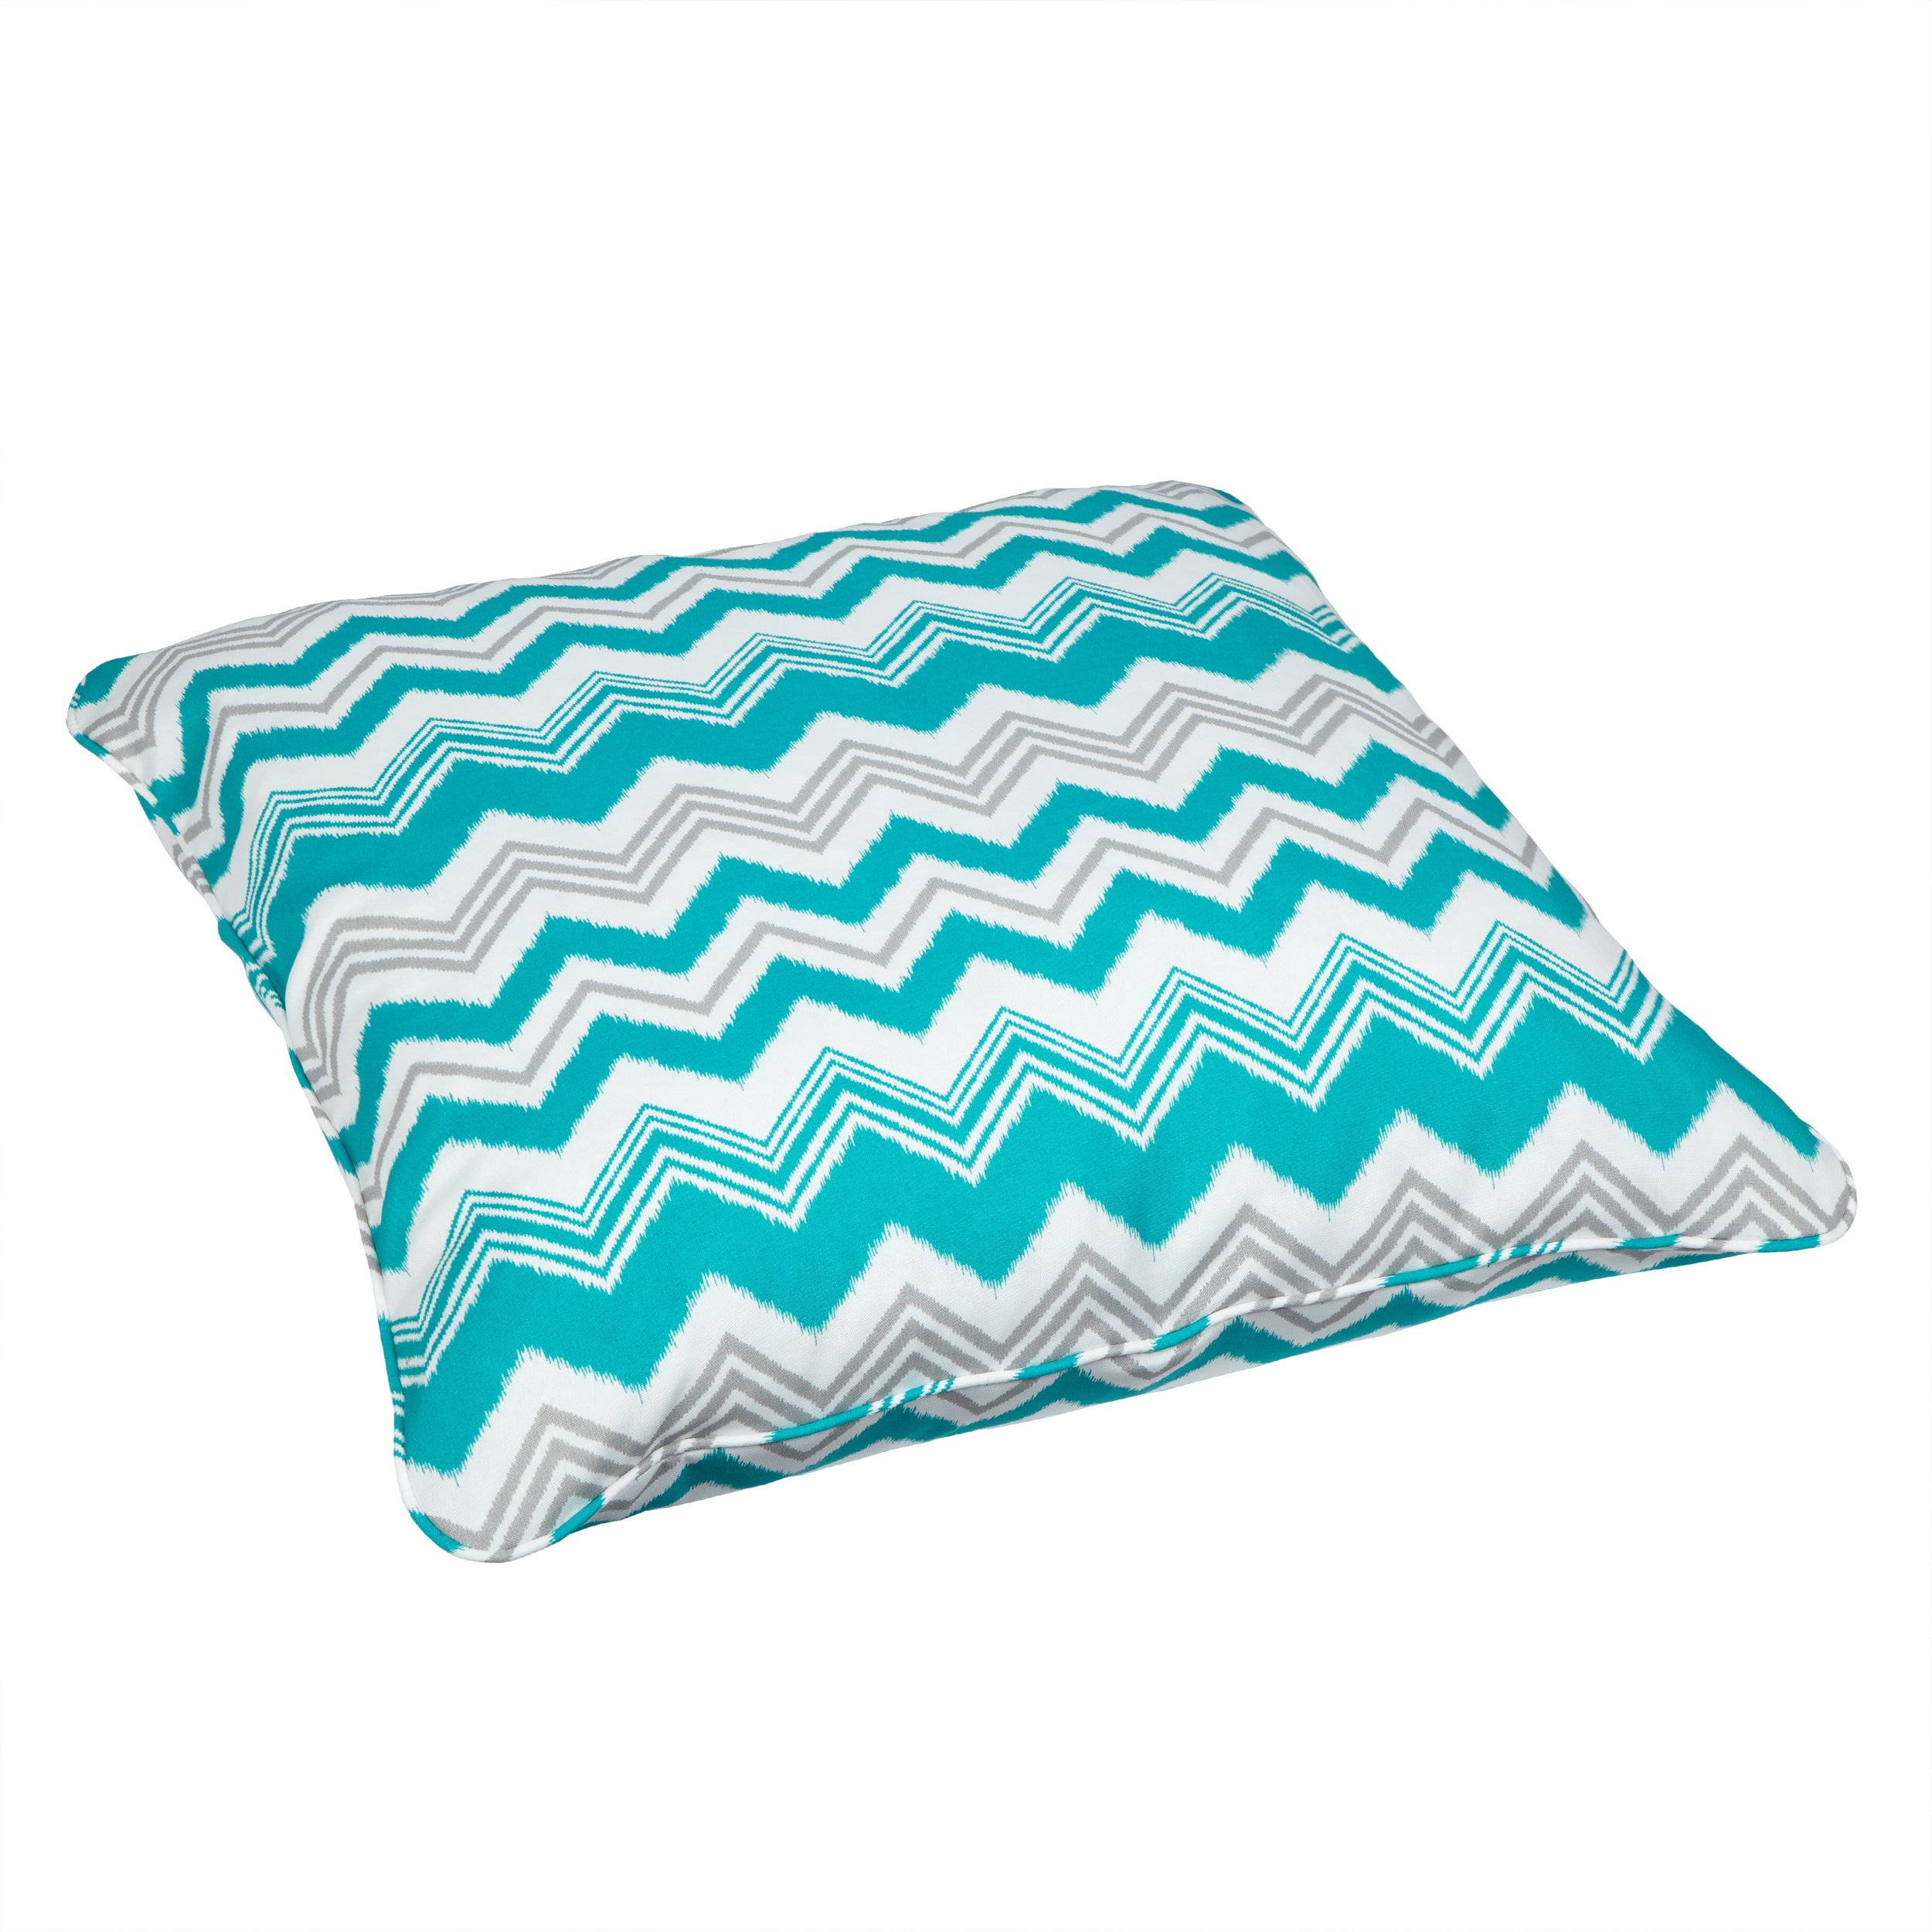 Tropic Zazzle Corded Outdoor/ Indoor Large 28-inch Floor Pillow at Sears.com